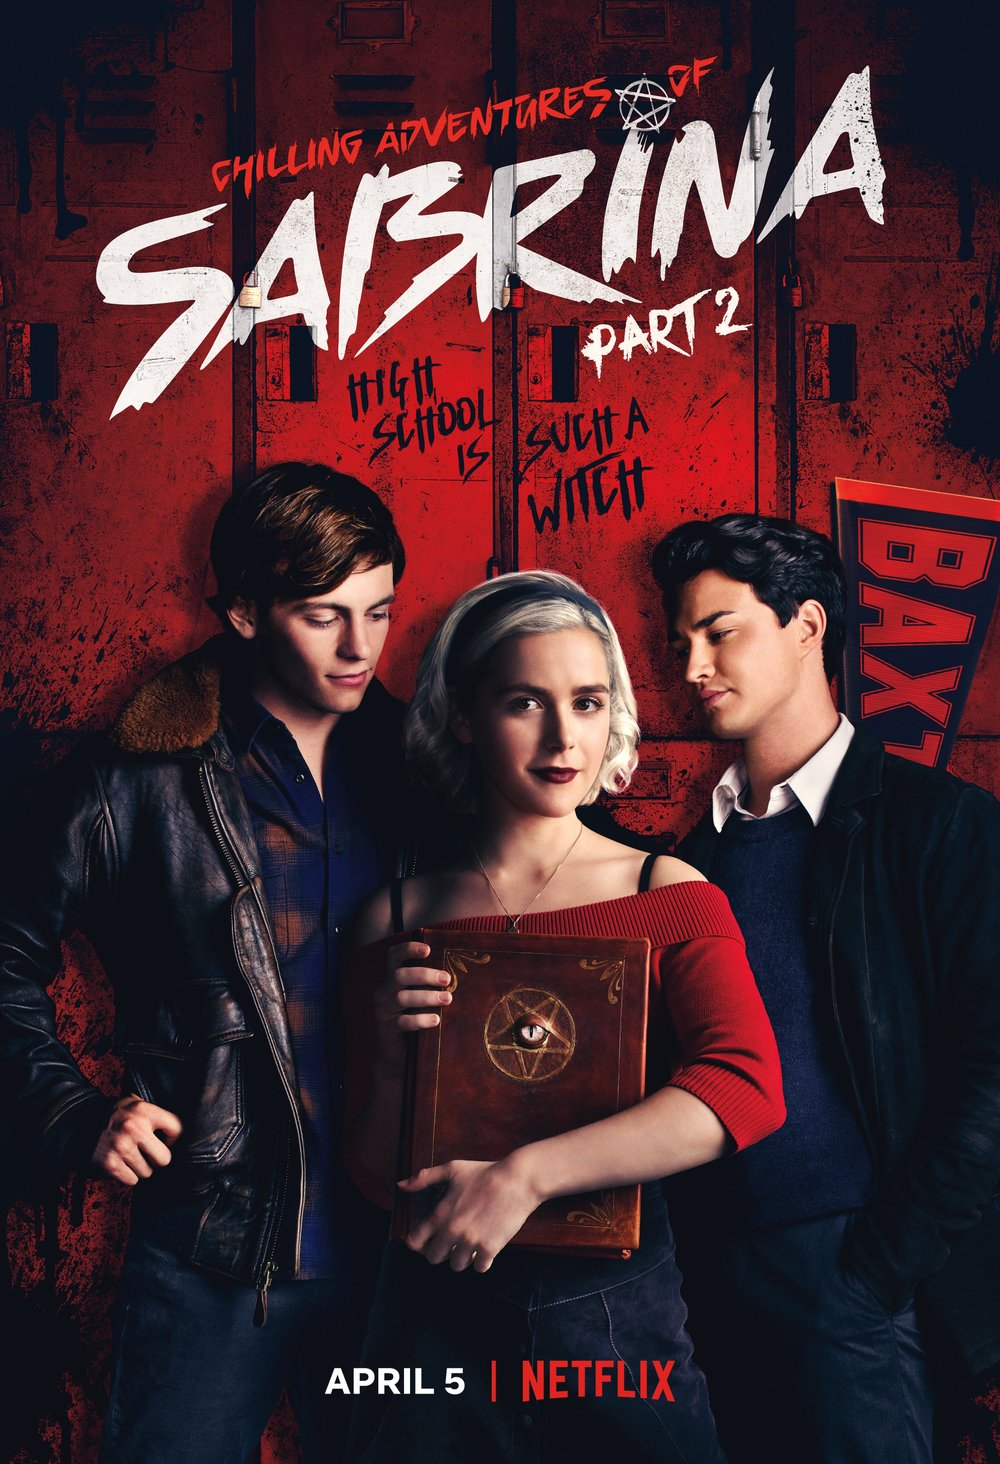 new-poster-for-netflixs-chilling-adventures-of-sabrina-part-21